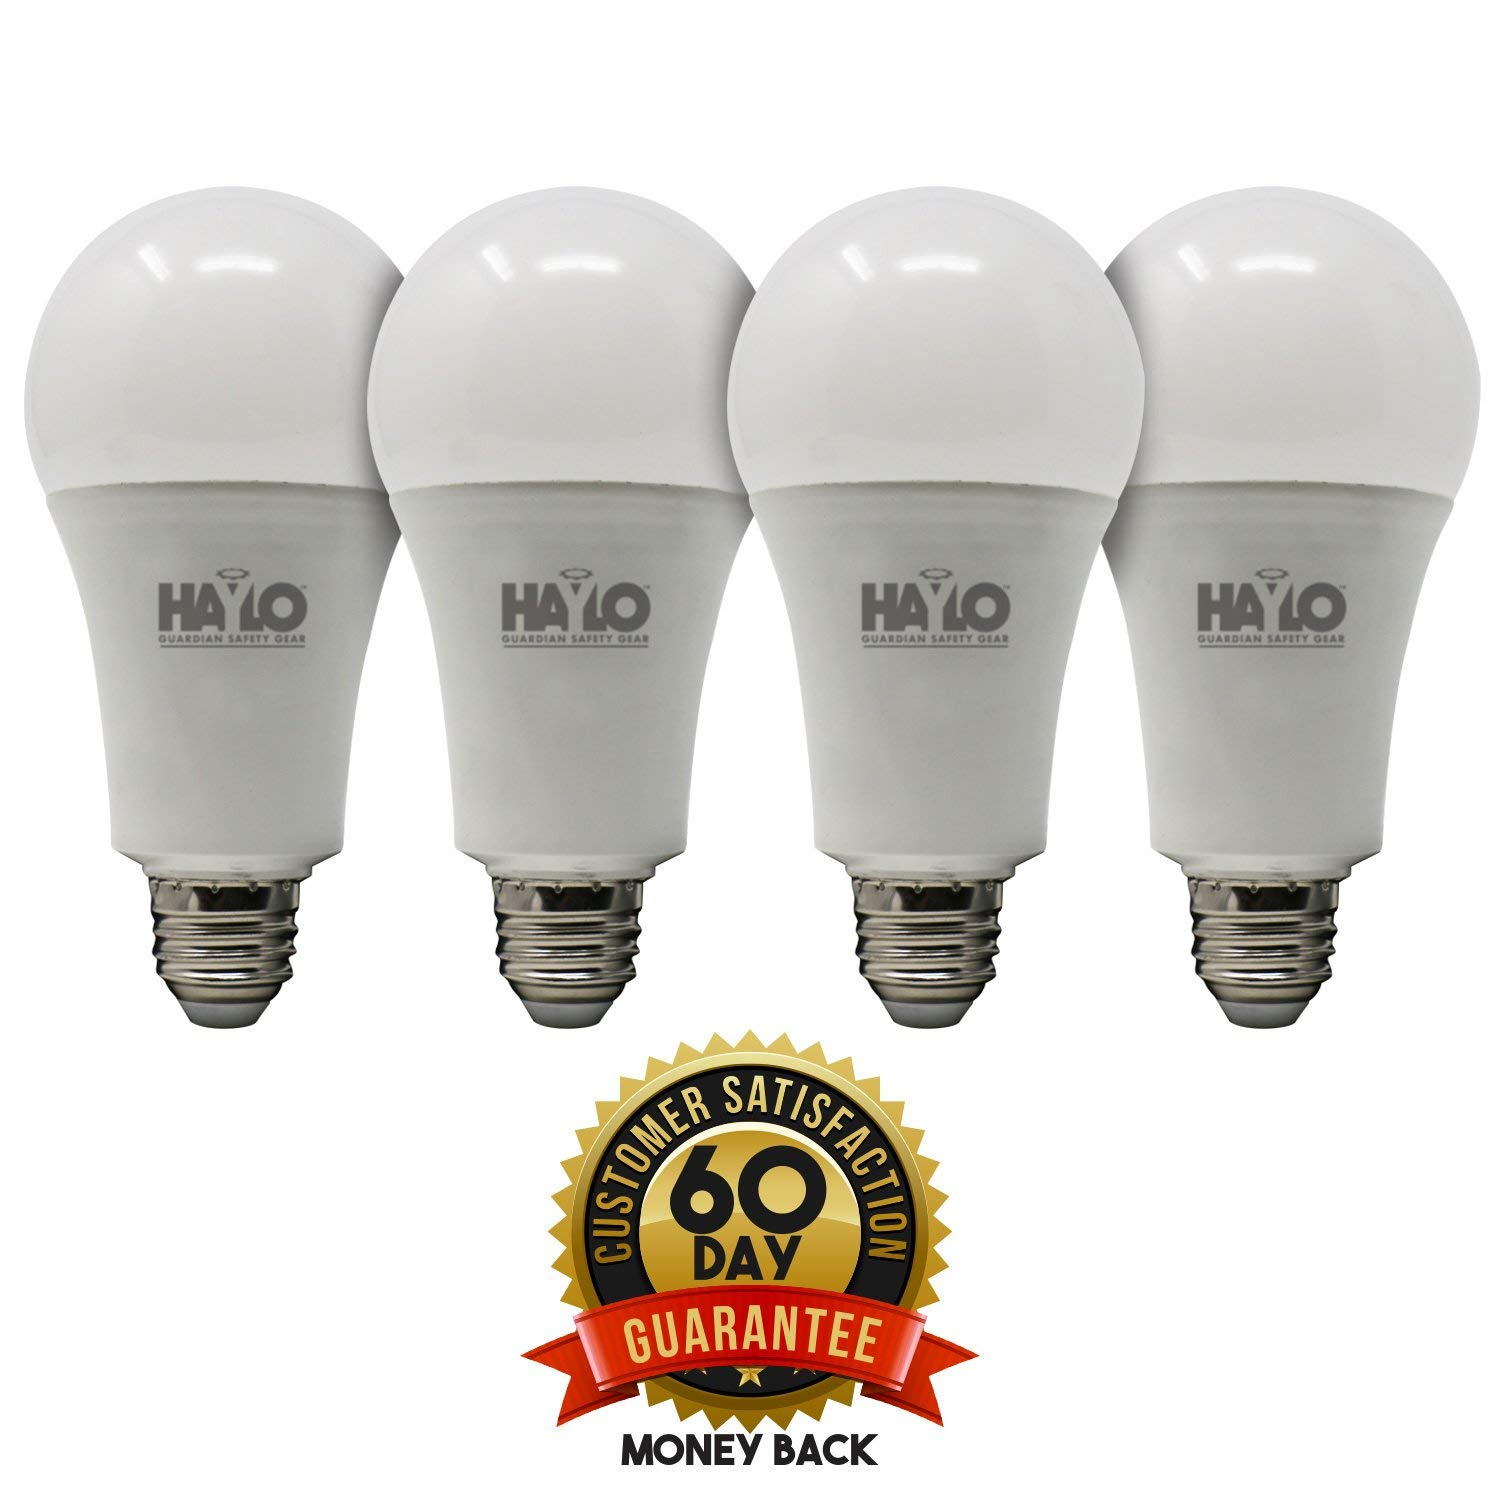 HAYLO Emergency L.E.D Light 4 Pack Rechargeable Emergency LED Bulb Regular Use and Emergency Light for Power Outage Camping Outdoor Activity 3500K Hurricane 9W 120V 60W Equivalent